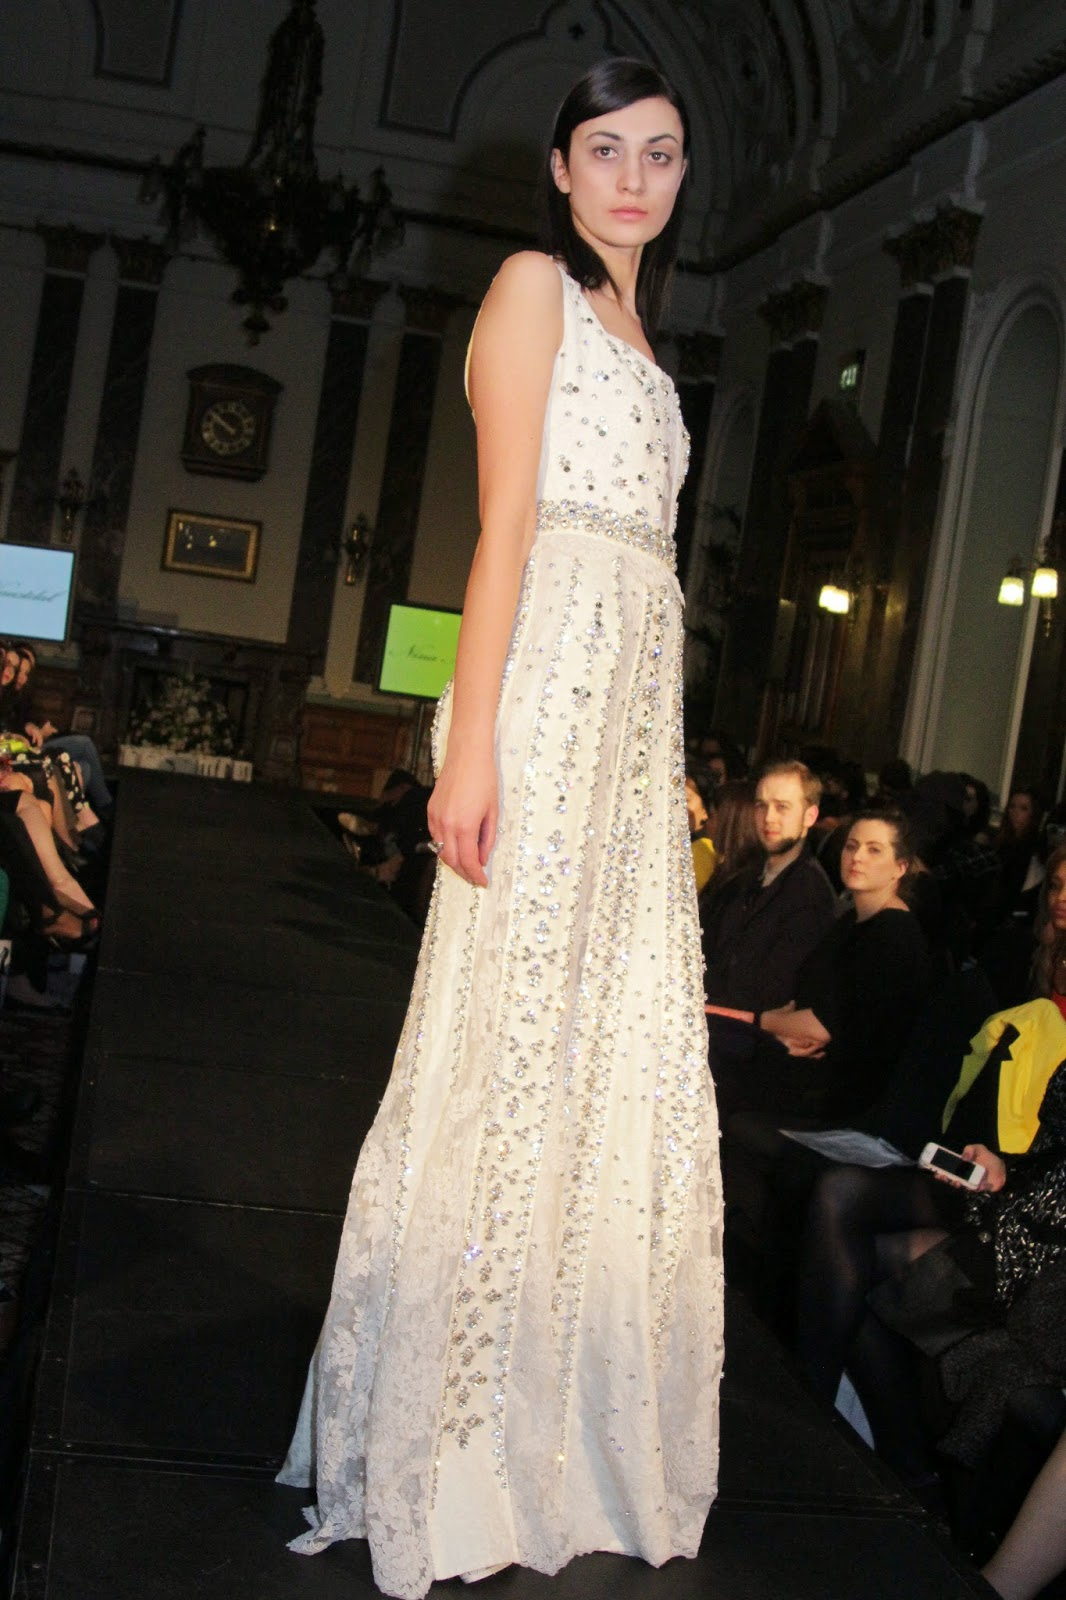 Nina Naustdal at Birmingham Fashion Week